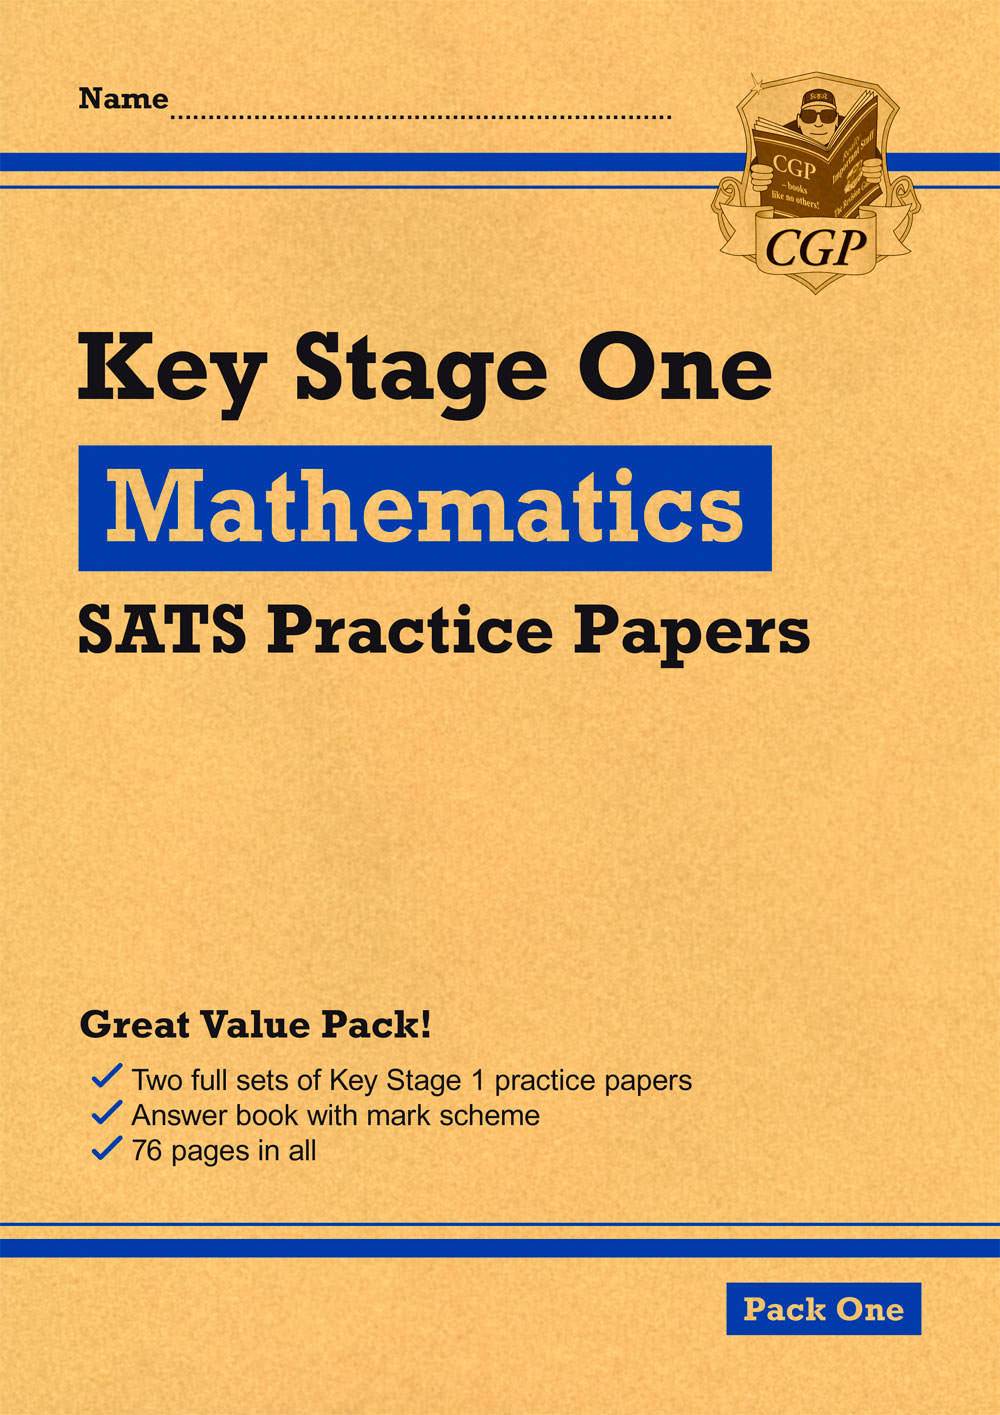 New KS1 Maths SATS Practice Papers: Pack 1 (for the 2020 tests)